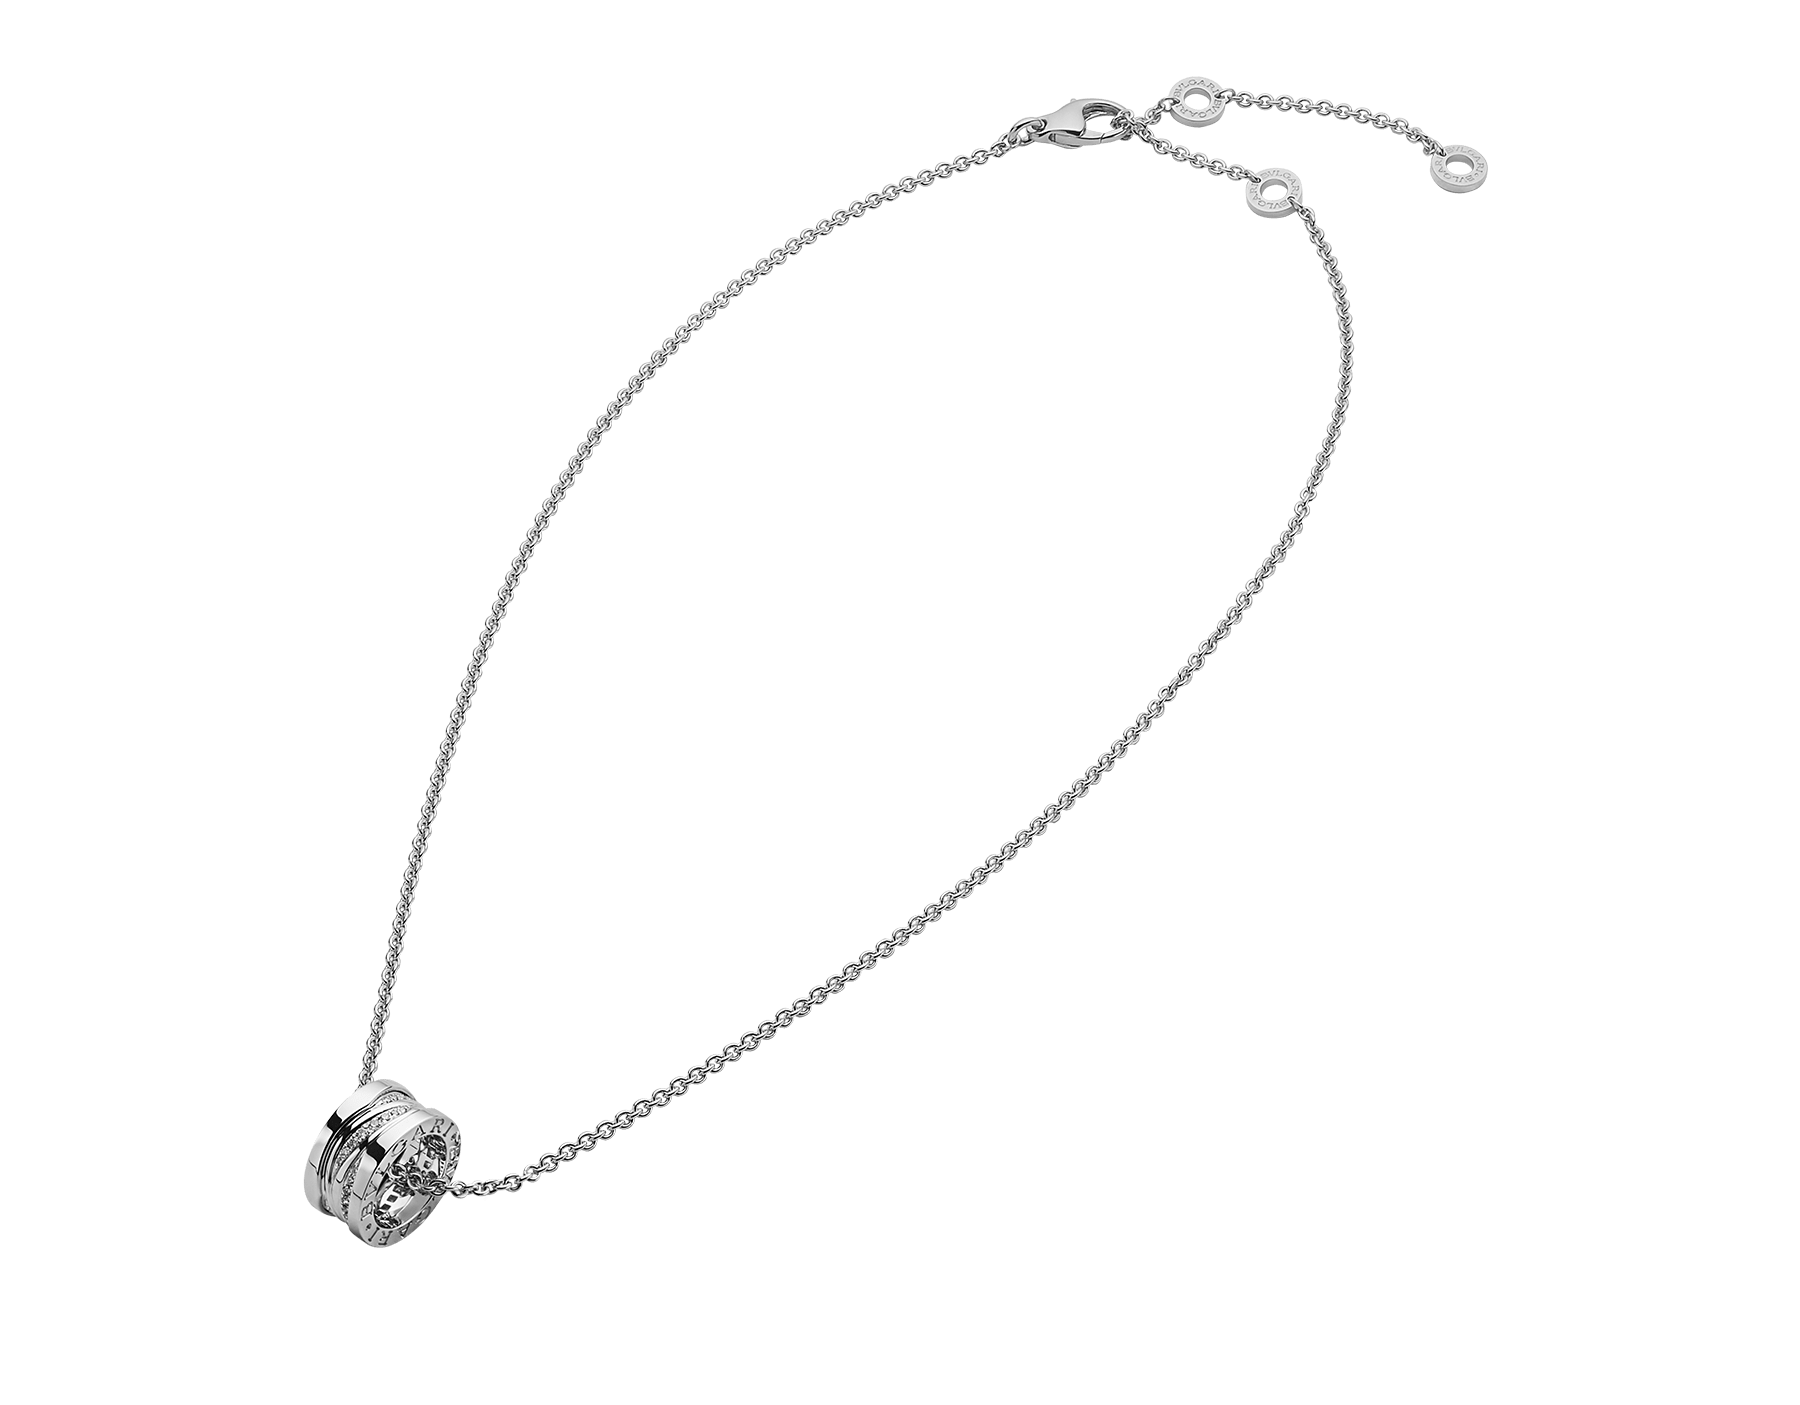 B.zero1 Design Legend necklace with18 kt white gold pendant set with pavé diamonds (0.20 ct) on the spiral and 18 kt white gold chain. 355061 image 2